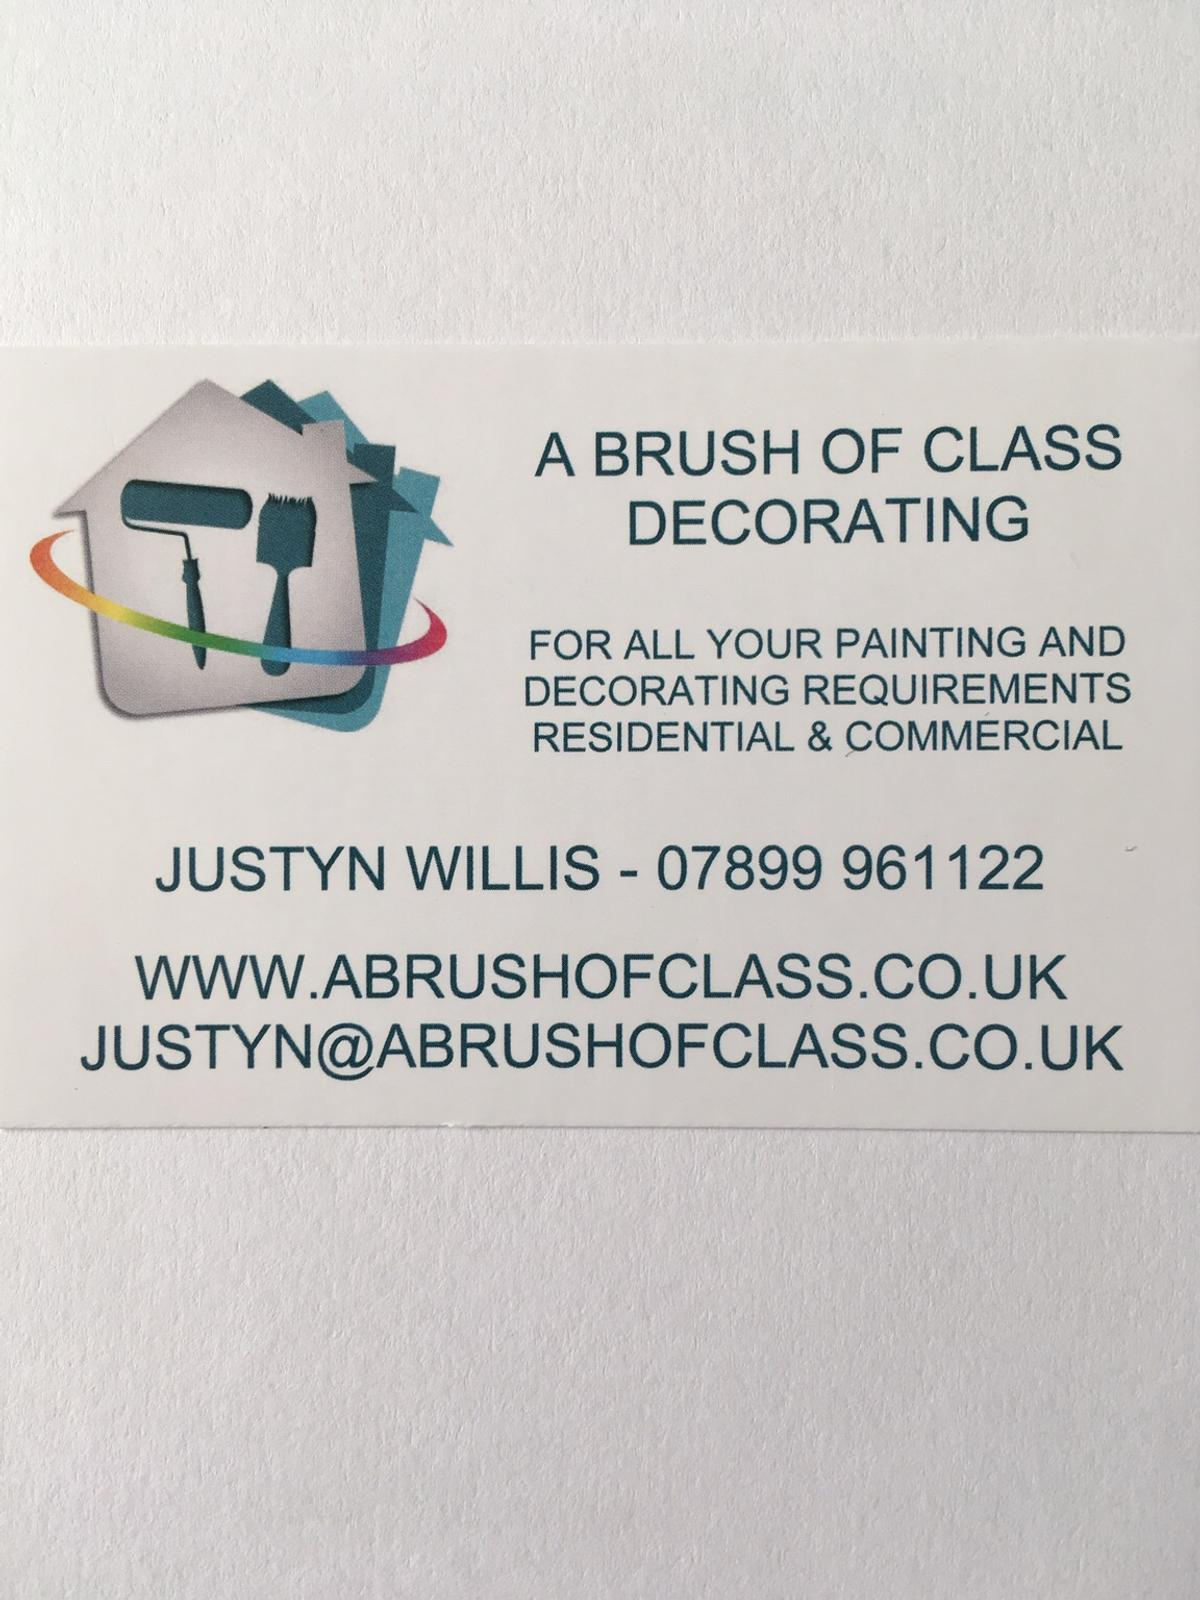 A Brush Of Class Decorating for all your painting and decorating requirements.  We offer a very good and reliable painting and decorating service throughout Suffolk and Essex all internal and external work undertaken residential and commercial all covered no job to small or to large .we offer a day rate service if required or project price .we are a very trusted company extremely professional and reliable and honest all of our prices are very competitive please contact us for a free quotation .we are here to help with whatever the size of your budget and project .The price on this advert is a base line starting price please contact me for full free quotations . website address is on second picture. email Justyn@abrushofclass.co.uk telephone .07899961122